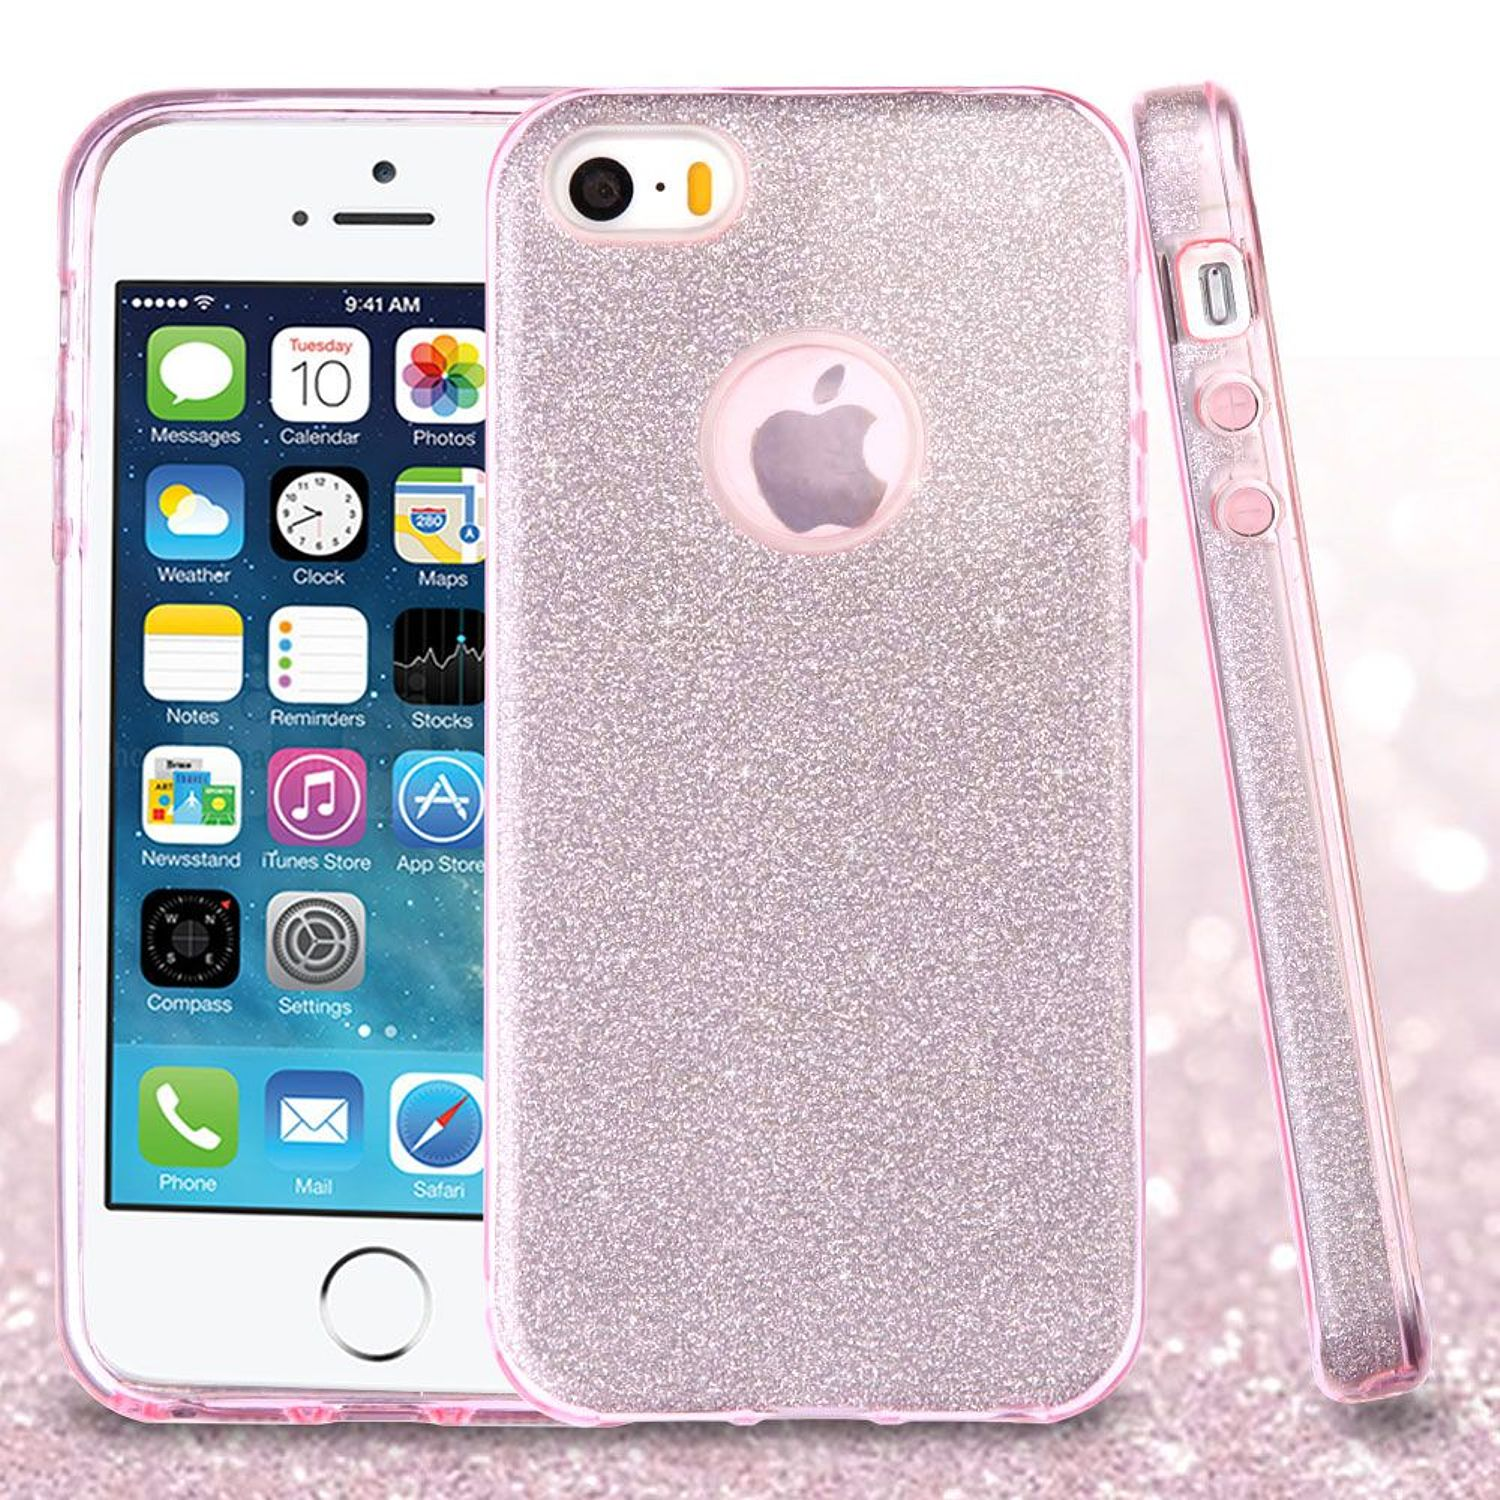 iPhone SE Case, iPhone 5S Case, by Insten Dual Layer [Shock Absorbing] Hybrid Glitter Hard Plastic/Soft TPU Rubber Case Cover For Apple iPhone 5/5S/SE, Pink